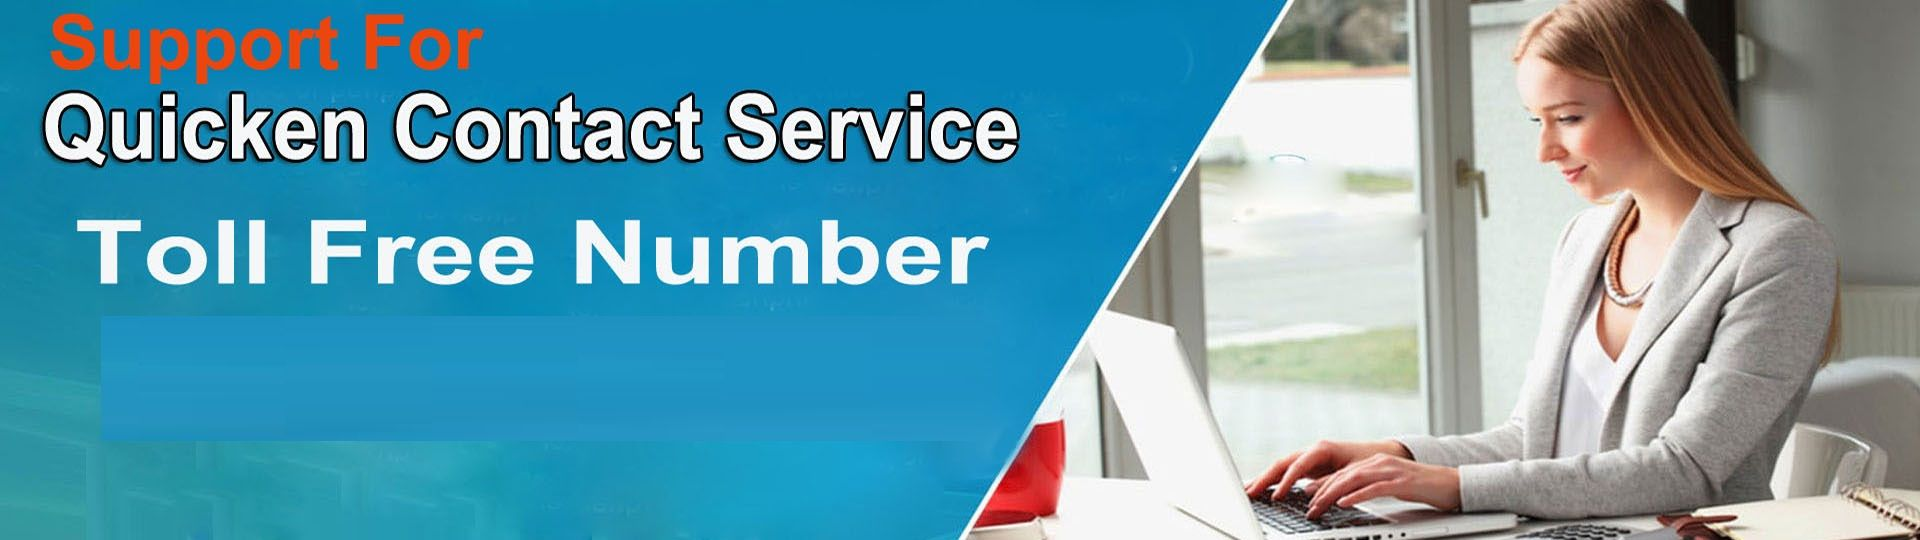 We Help You Any Kind of Request or Queries Related to Quicken Issues.  1-877-999-7292